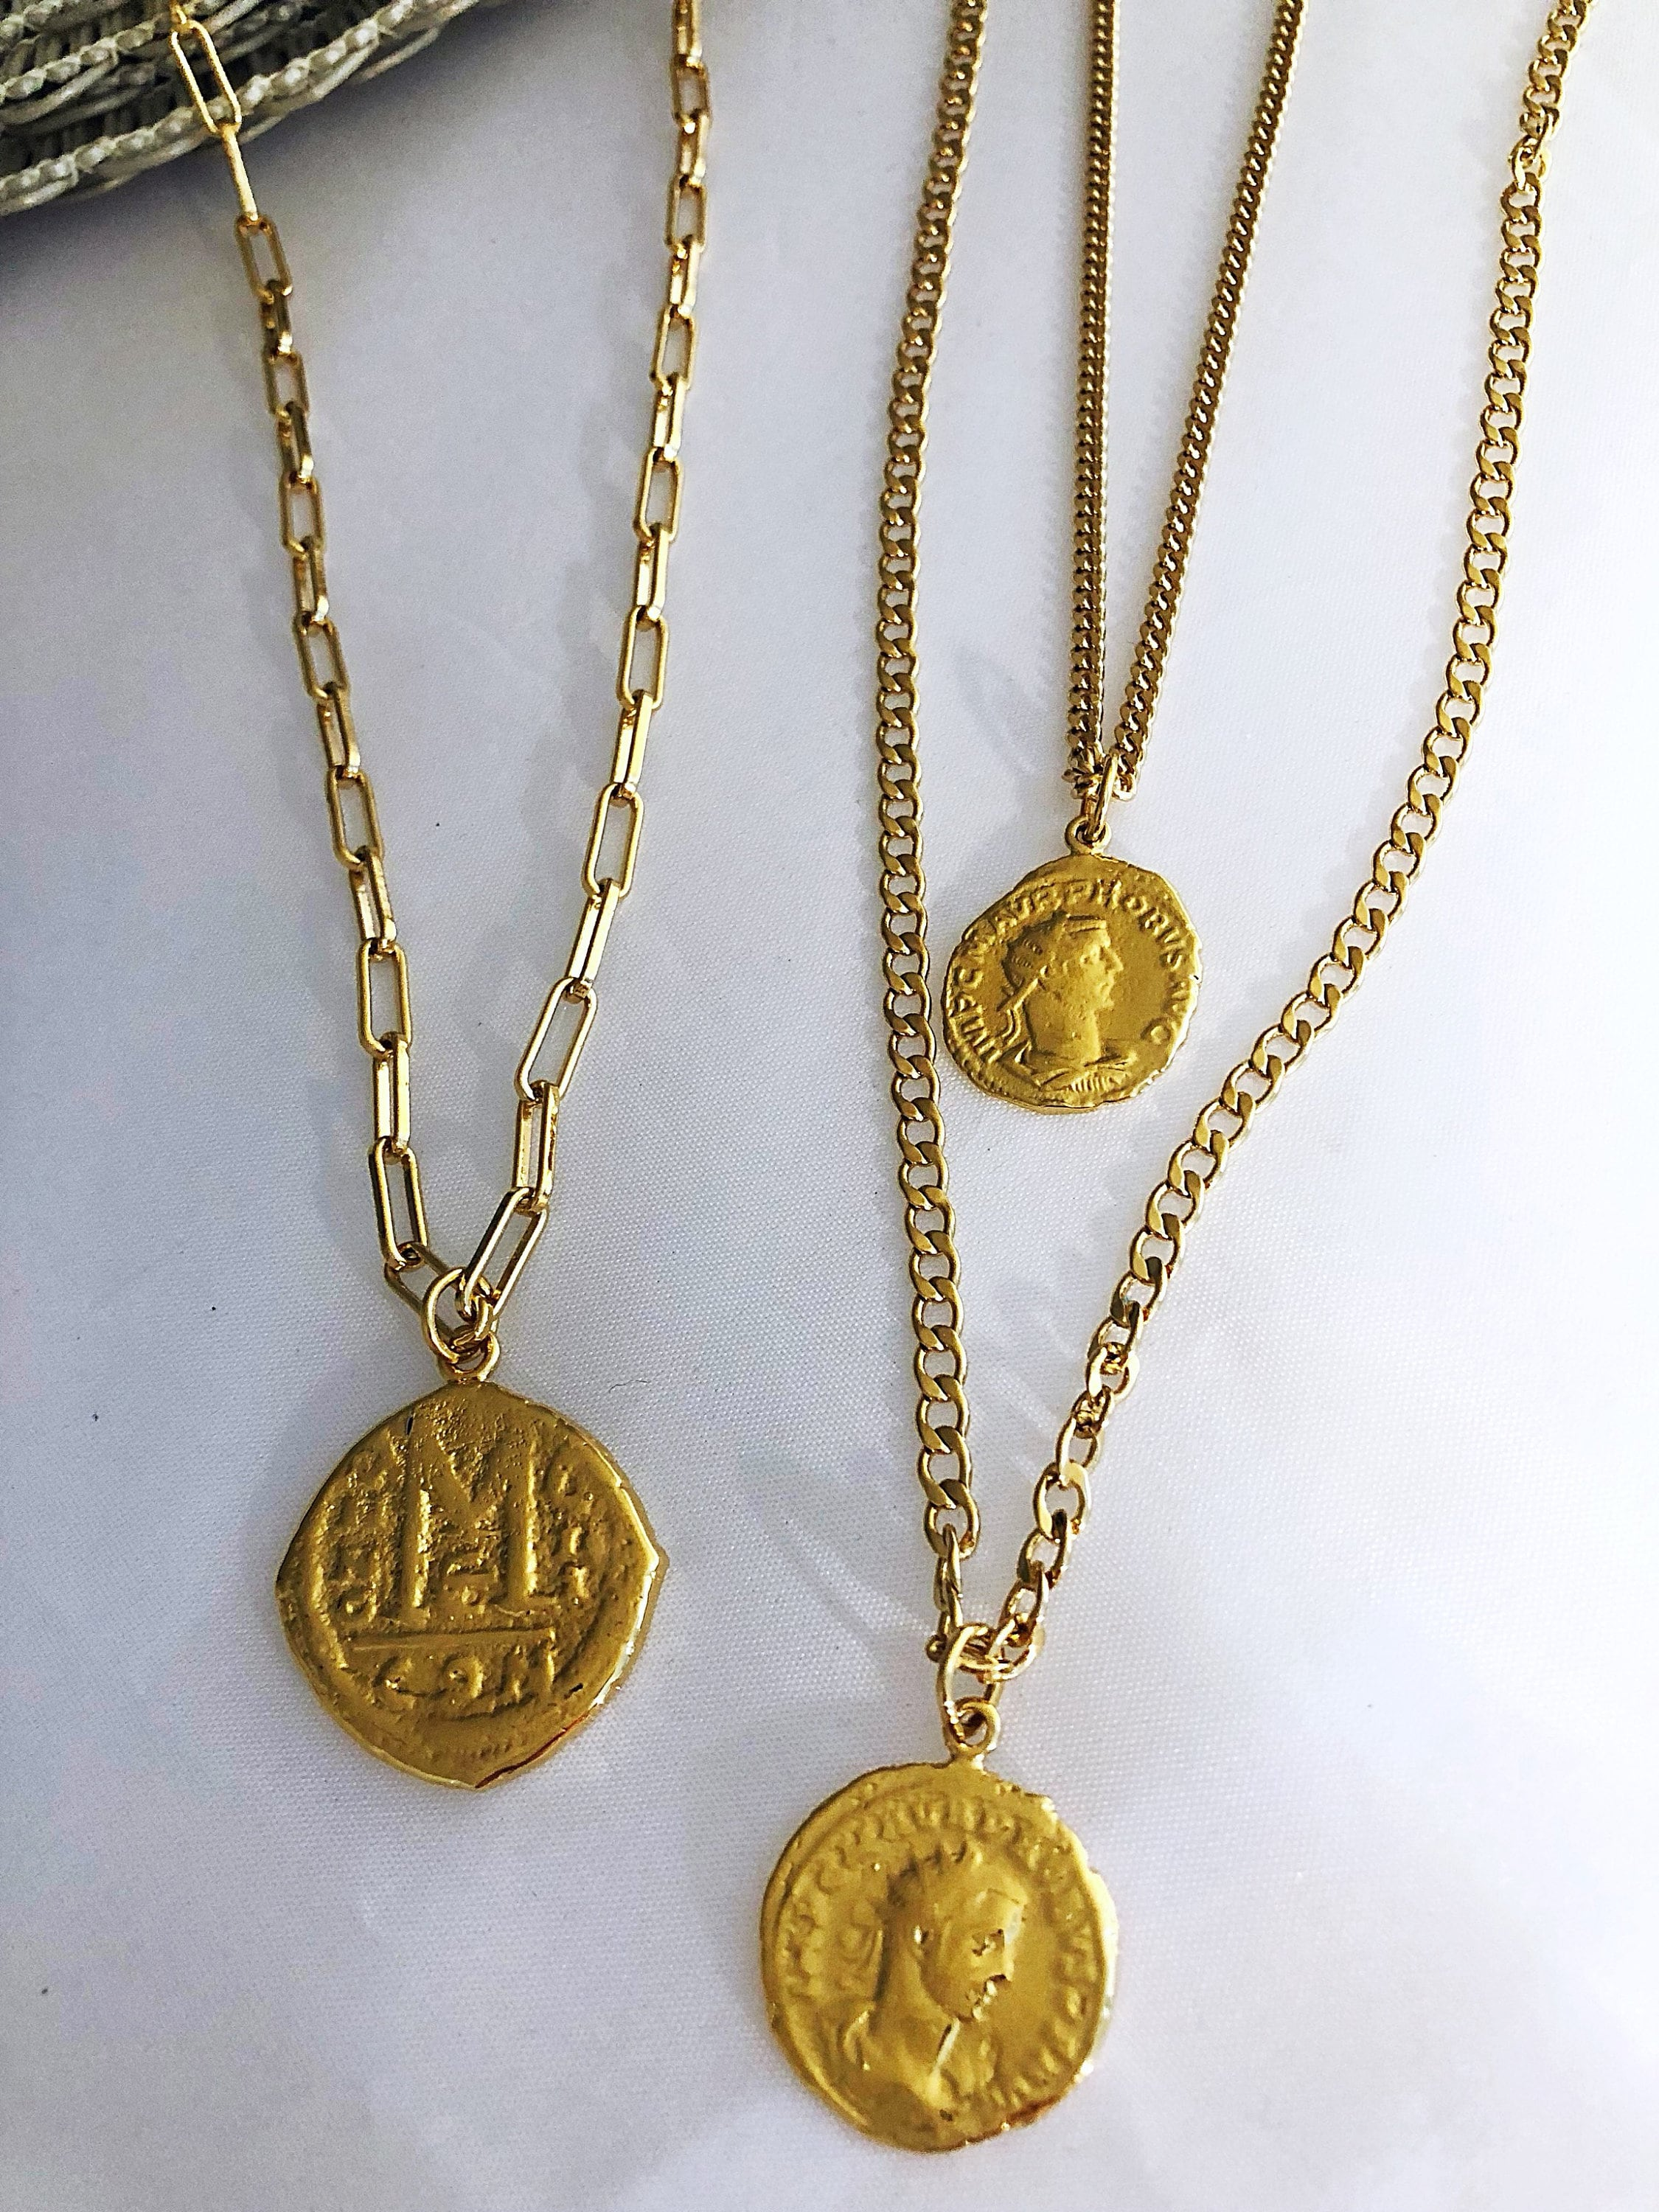 mb high styles large demand mfg necklaces chains are s today gold chain silver men offer design in mi jewelry of always a from designers quality ltd bloomfield mens at selection we top custom township here